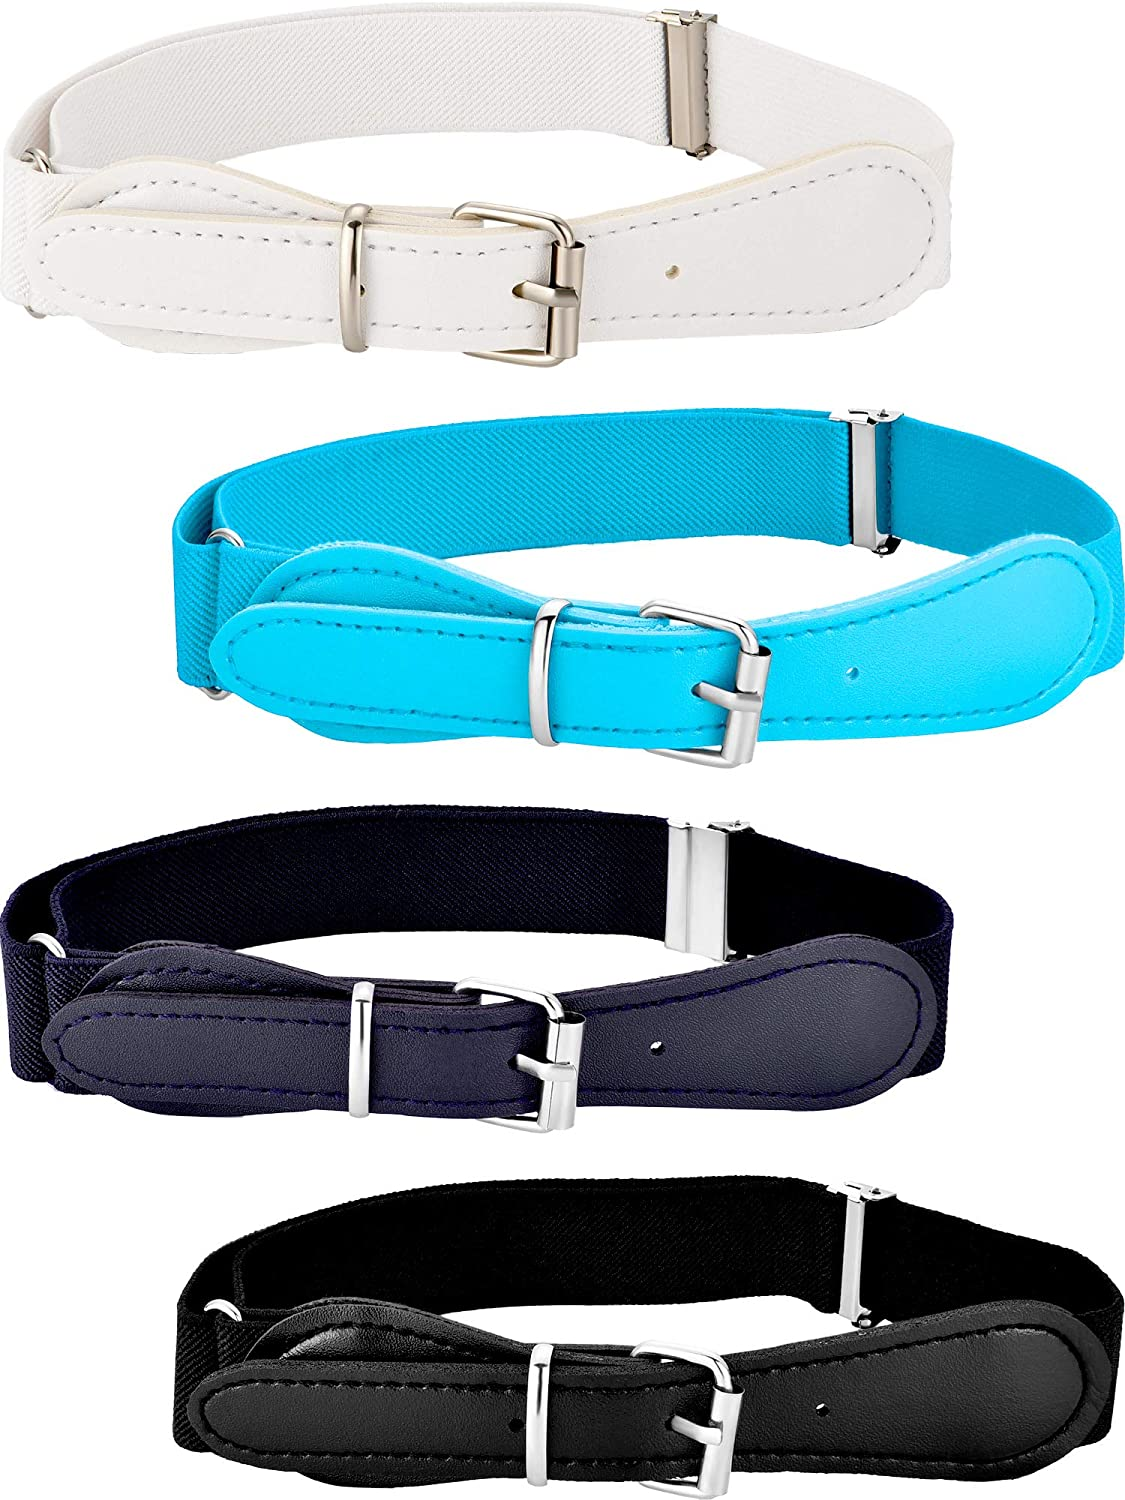 Tatuo 4 Pieces Kids Adjustable Elastic Belt with Leather Closure for Girls and Boys, Assorted Color